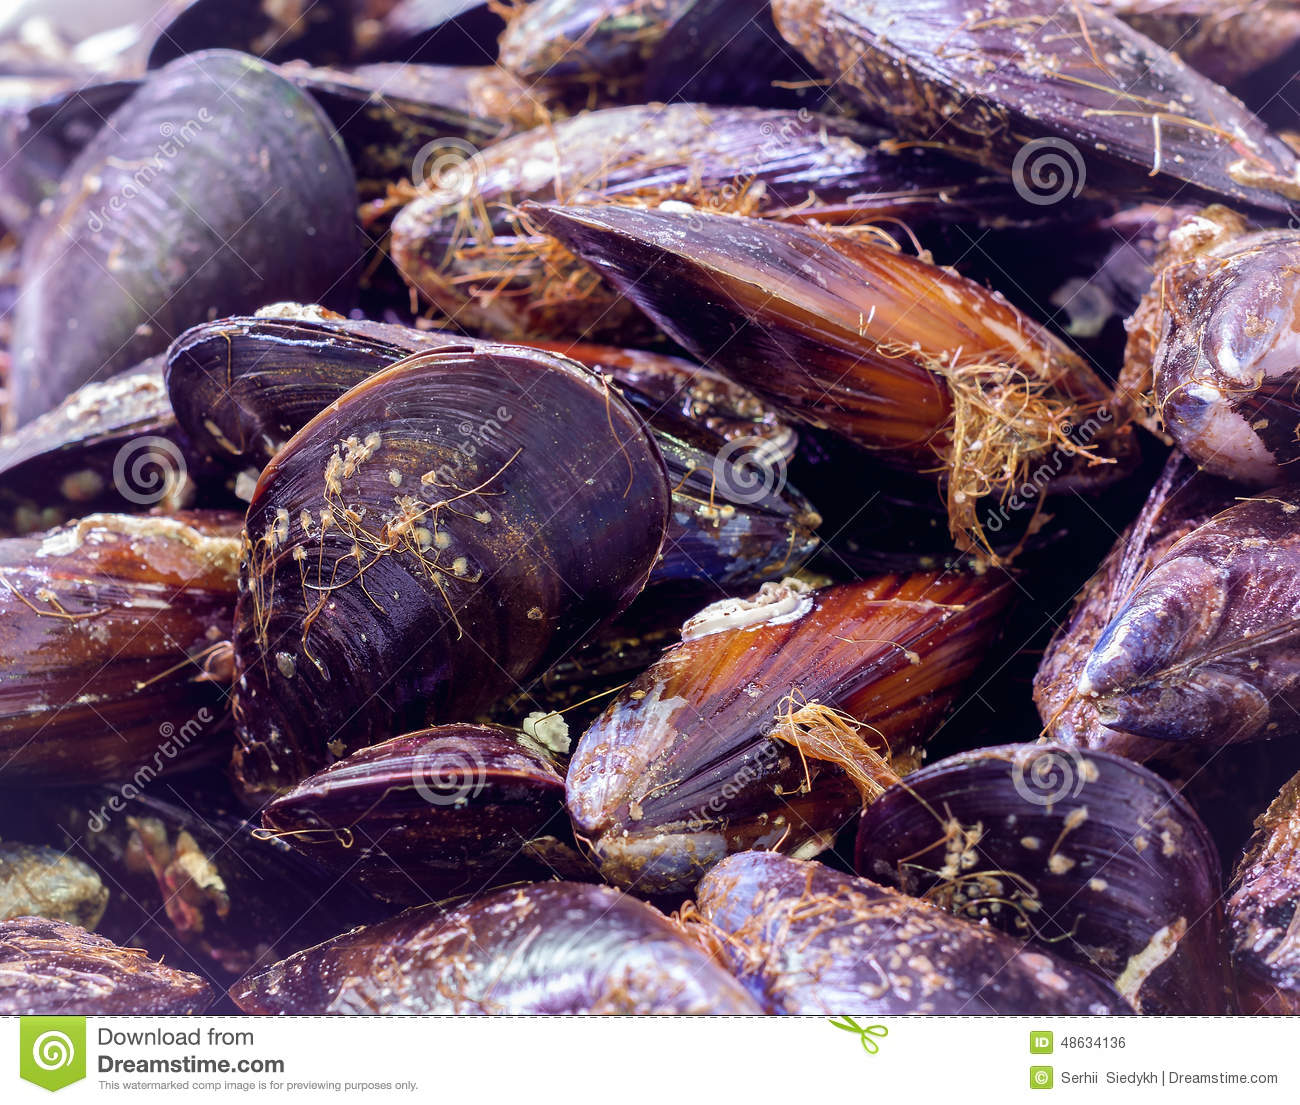 how to keep mussels fresh